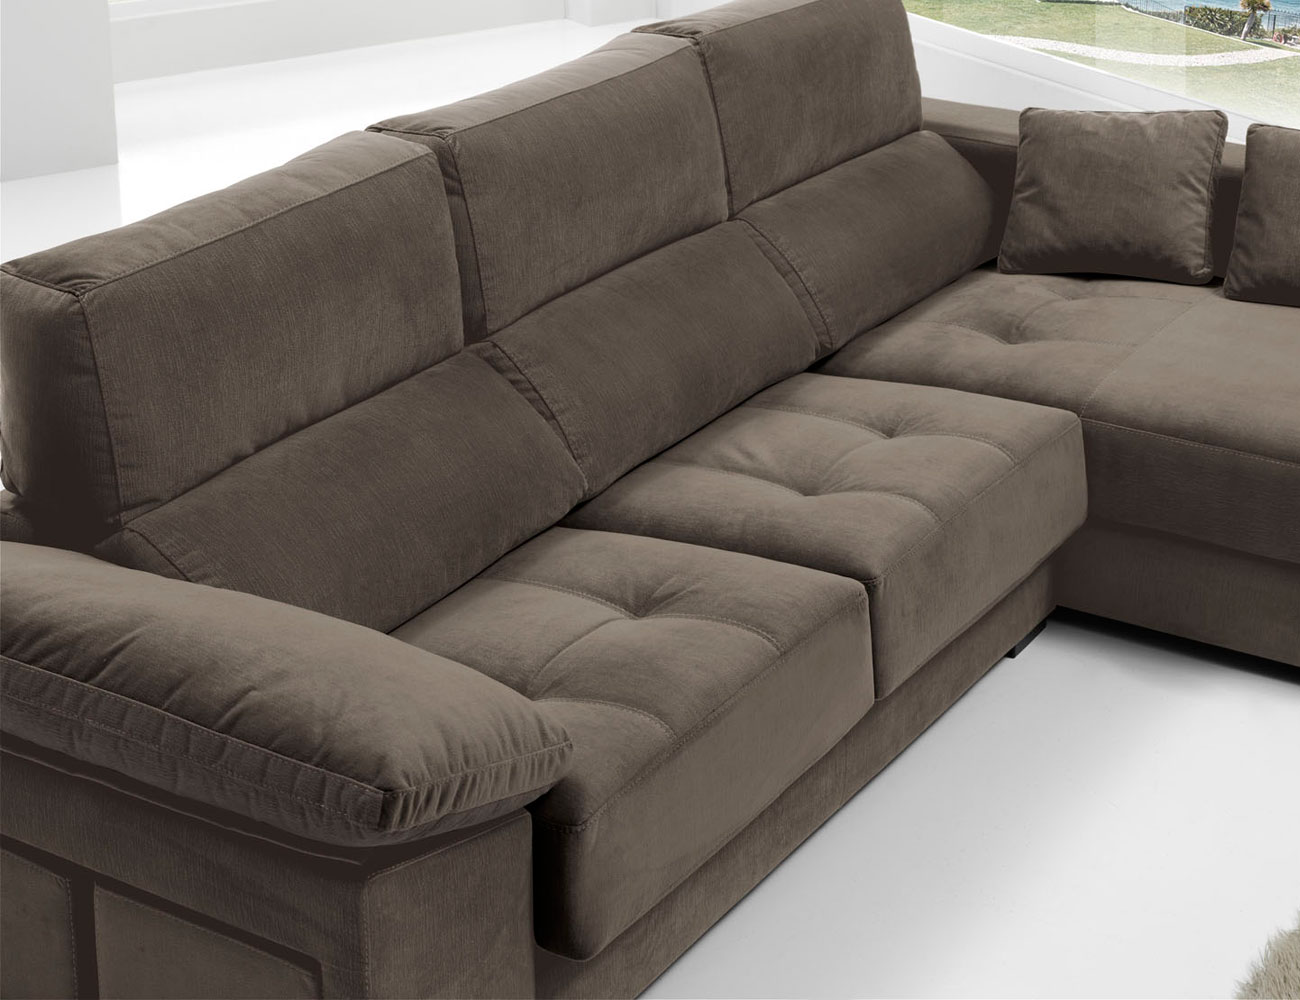 Sofa chaiselongue anti manchas bering pouf 231